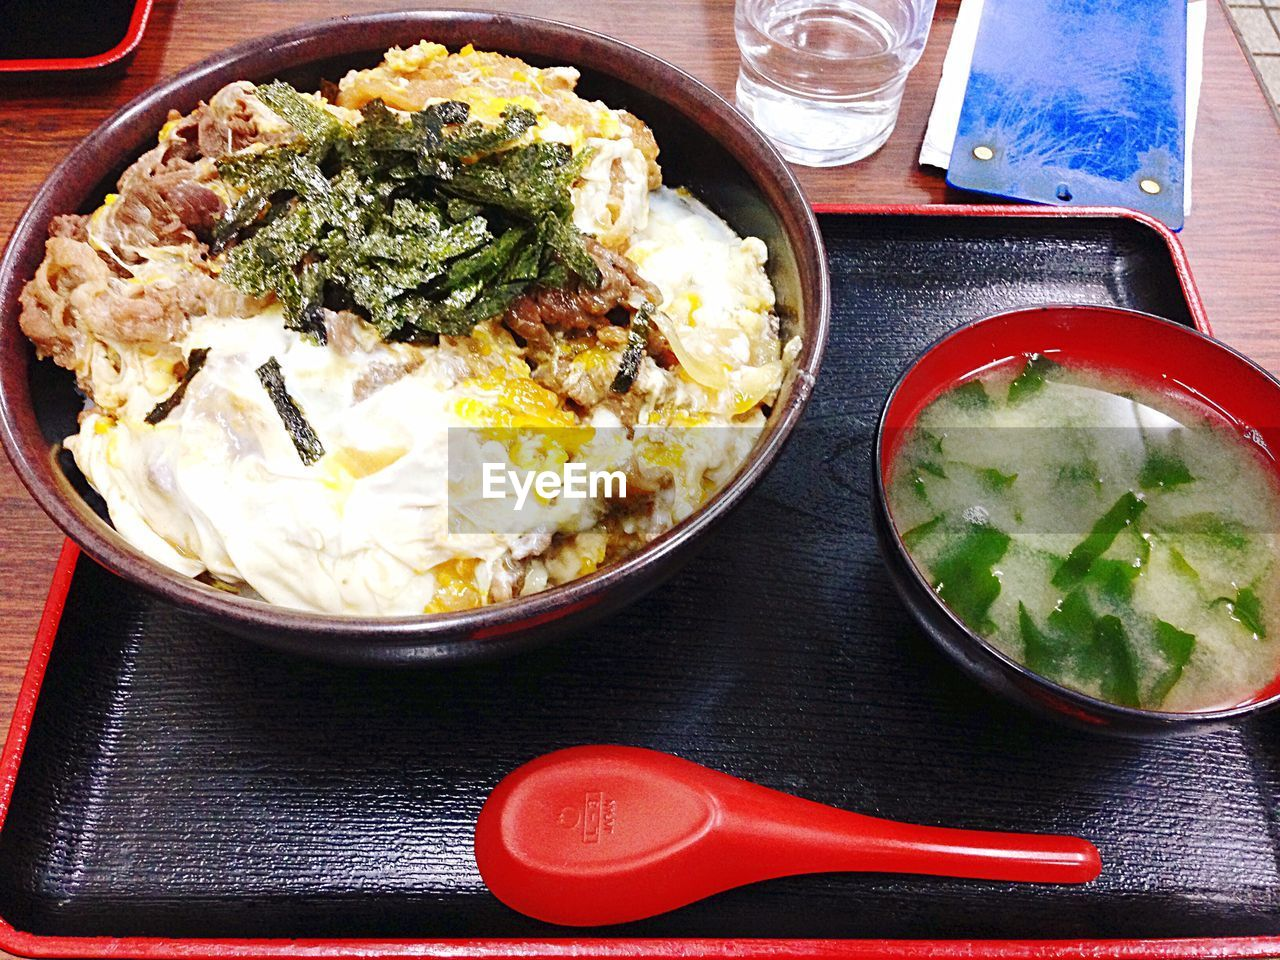 food, food and drink, table, healthy eating, ready-to-eat, freshness, serving size, plate, indoors, bowl, rice - food staple, no people, meal, lunch, fried rice, comfort food, close-up, day